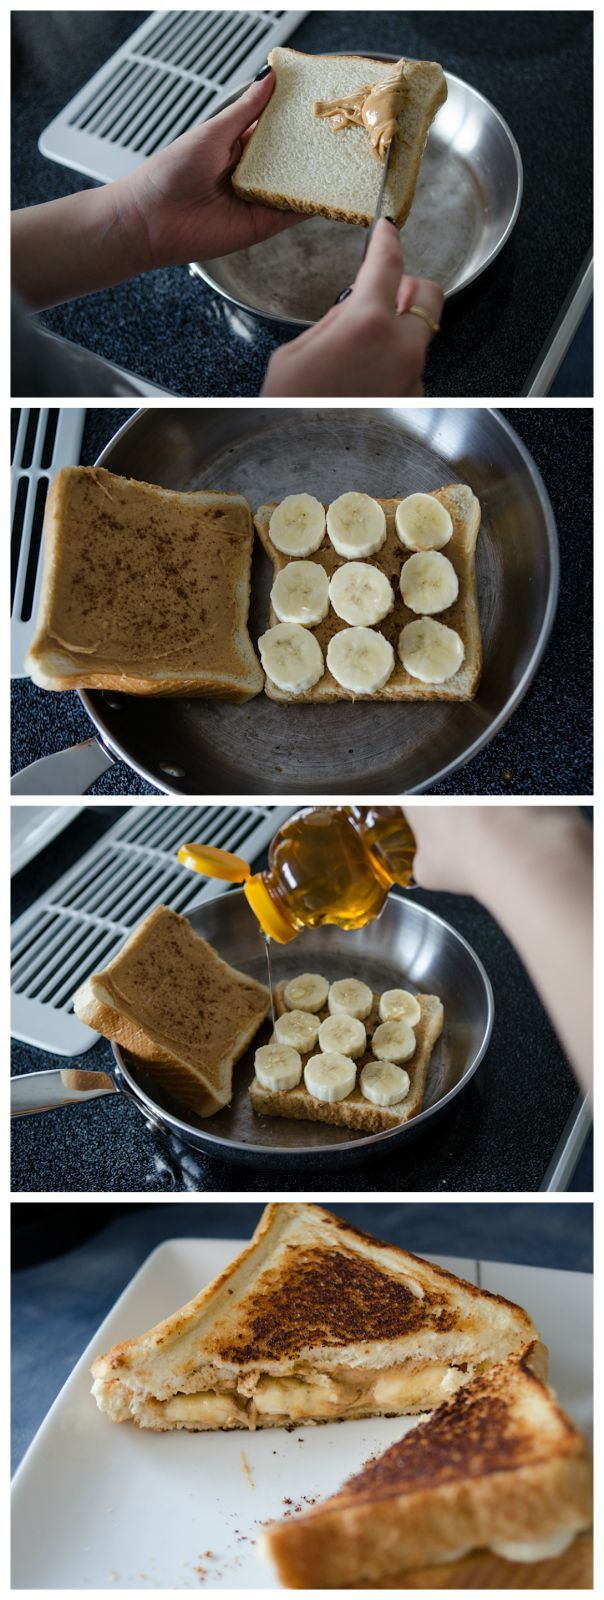 Peanut Butter and Banana Grilled Sandwich (you may add some Marshmallow Fluff to this; outstanding) #grilleddesserts